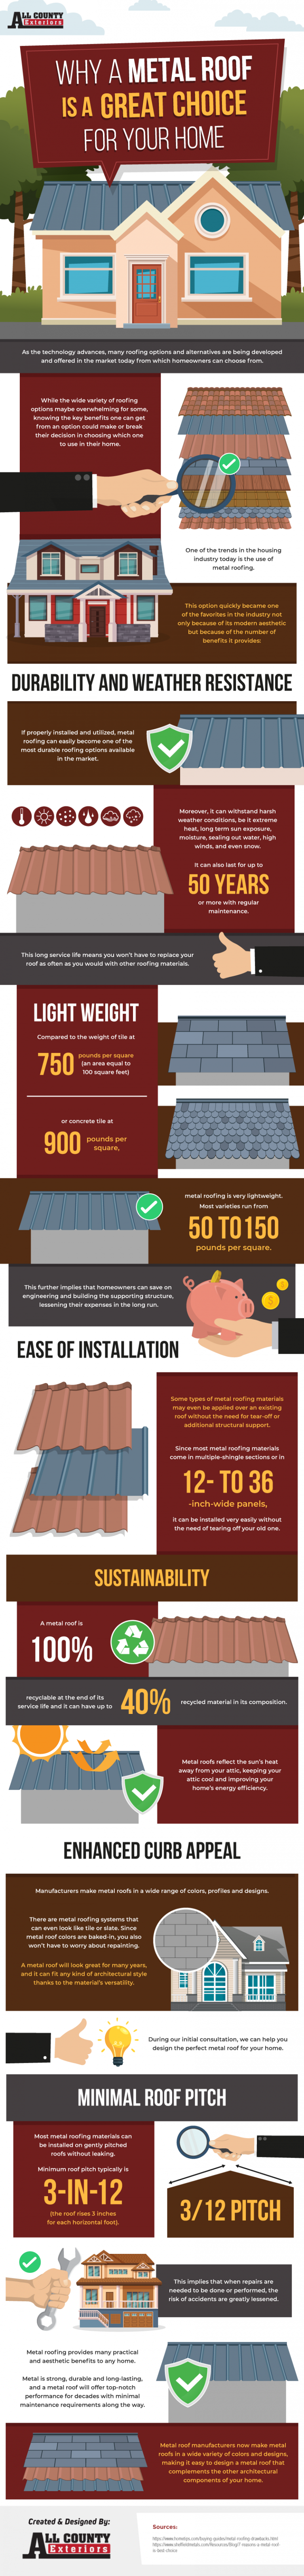 Why a Metal Roof is a Great Choice for Your Home